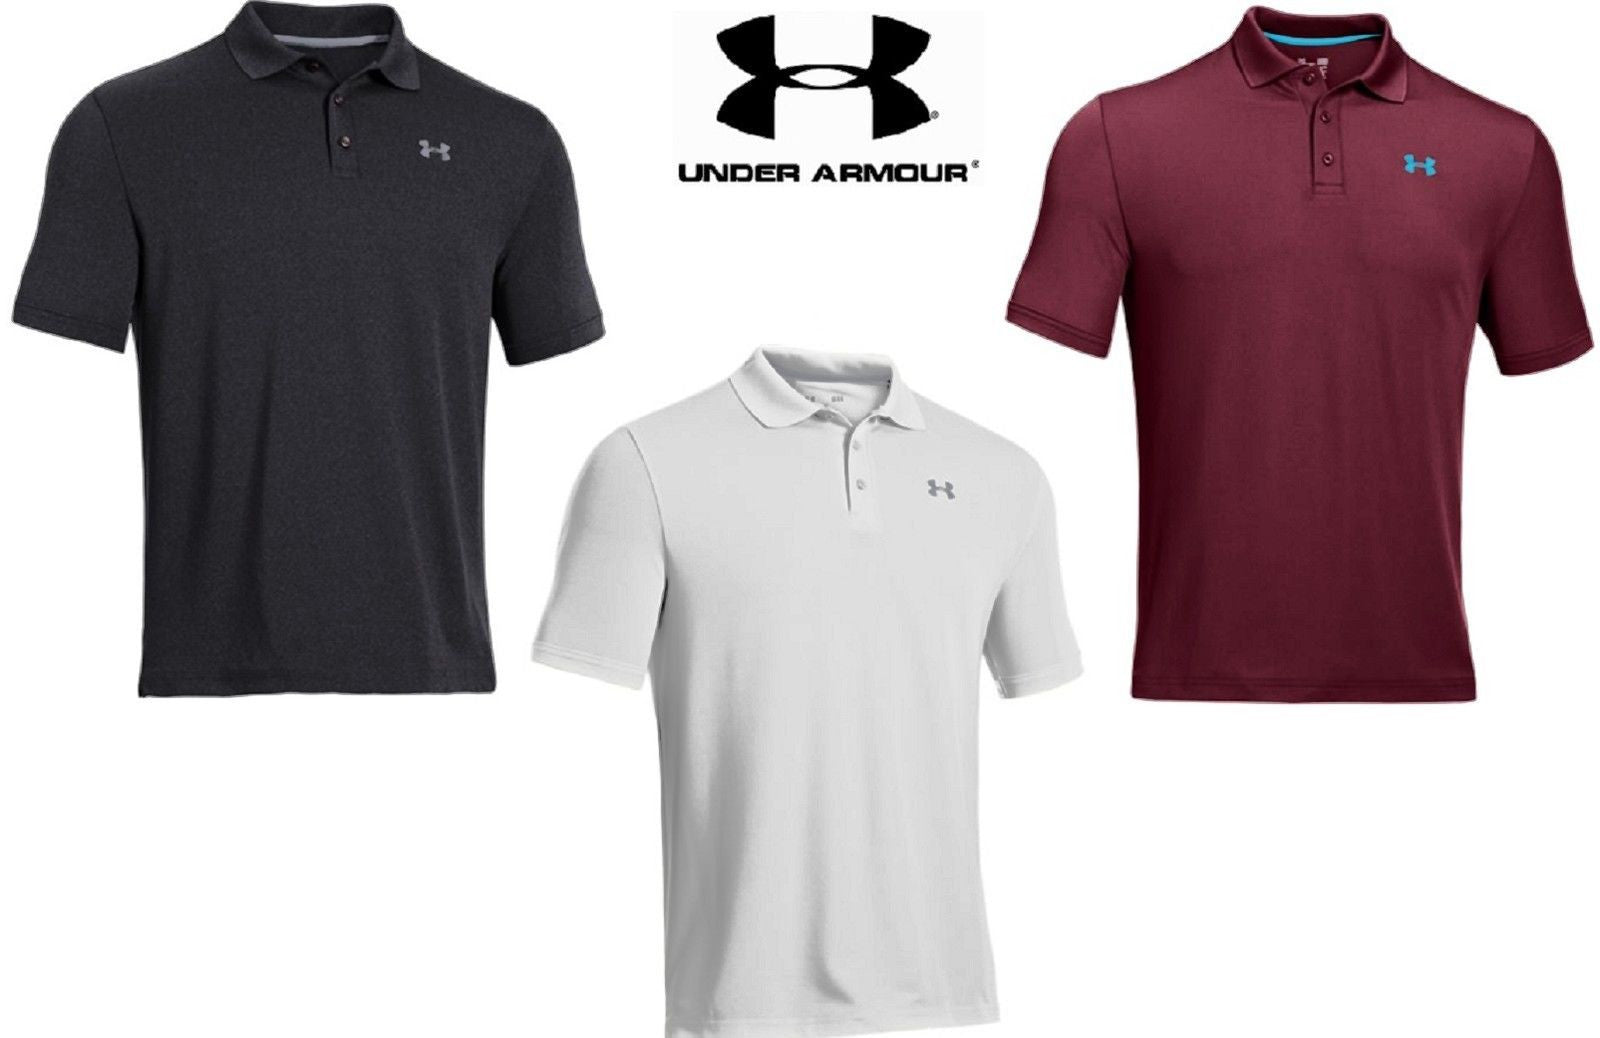 Under Armour Performance Polo Shirt Ua Full Loose Fit Collared